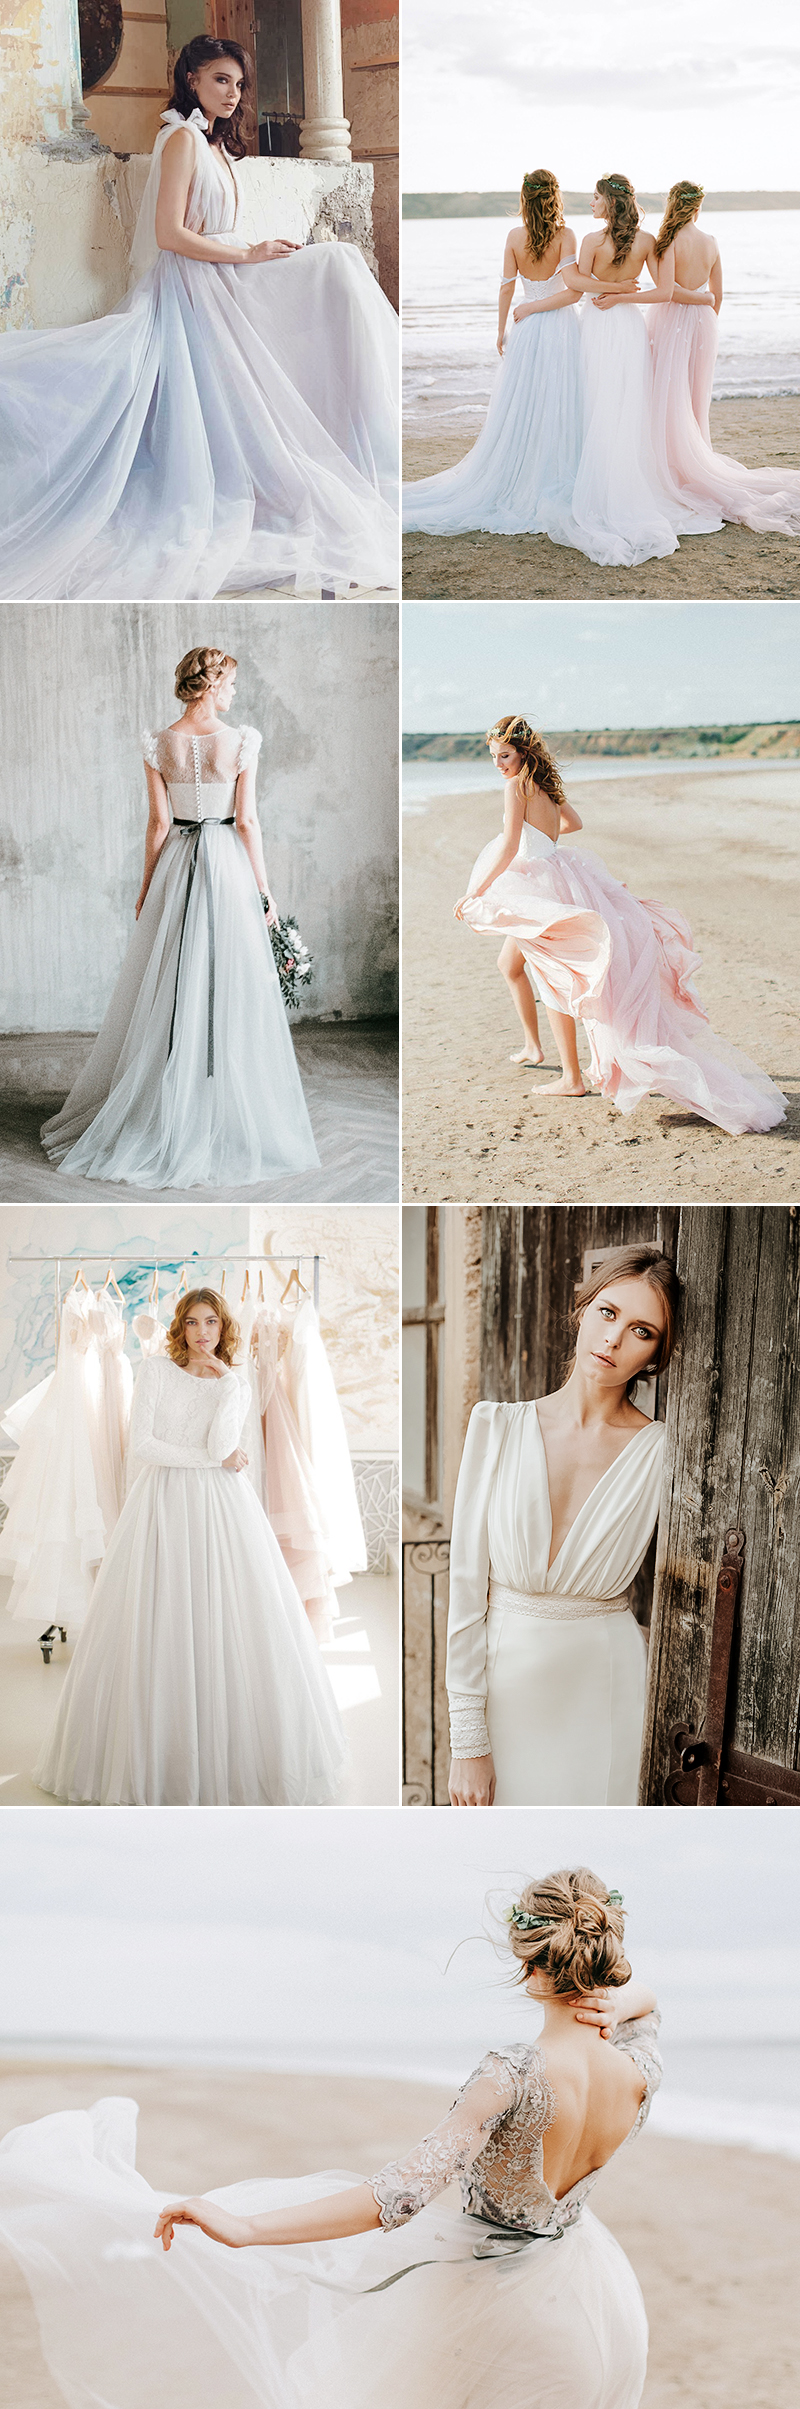 Praise wedding and family online shop - wedding dress